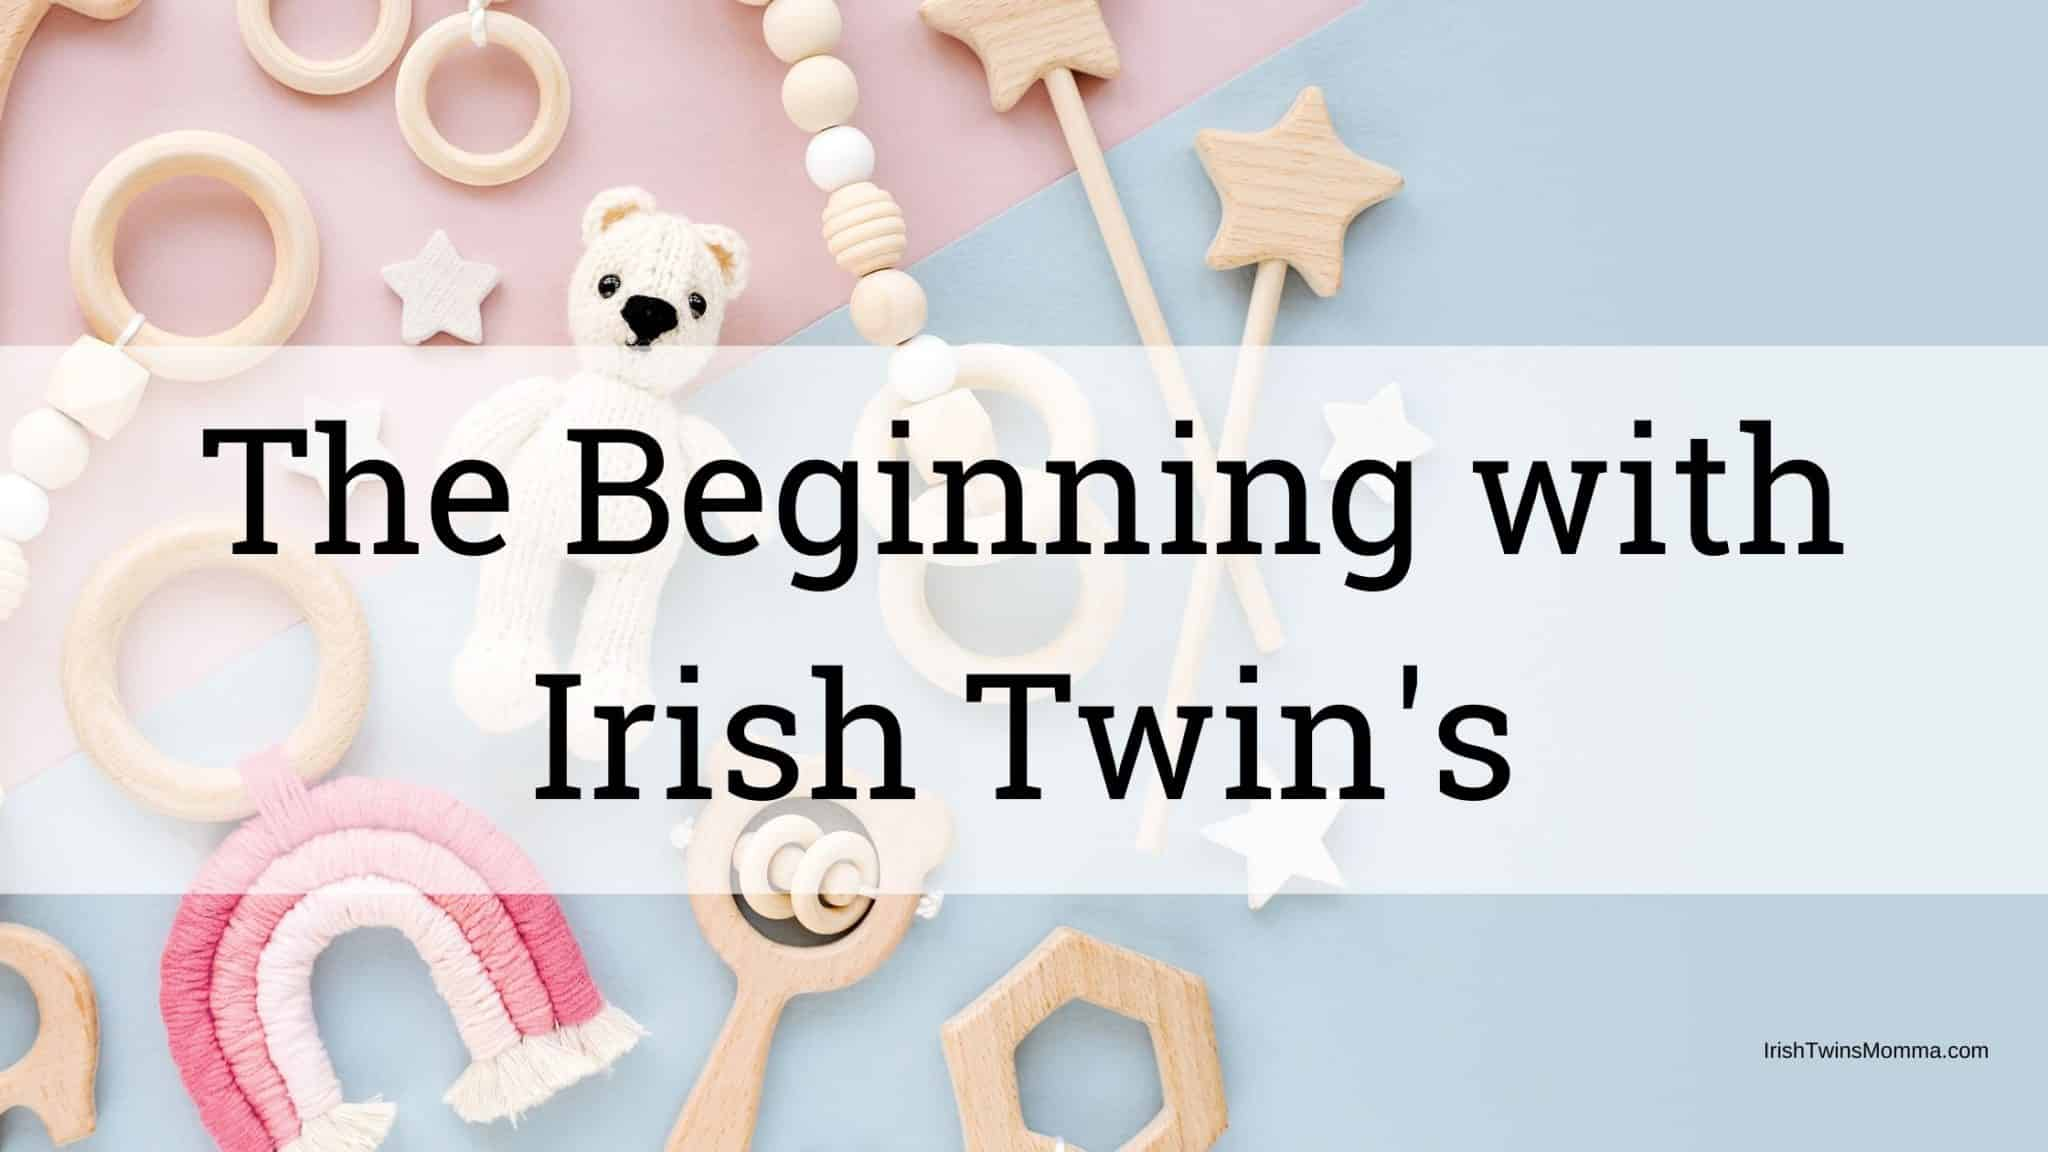 The beginning with Irish Twins